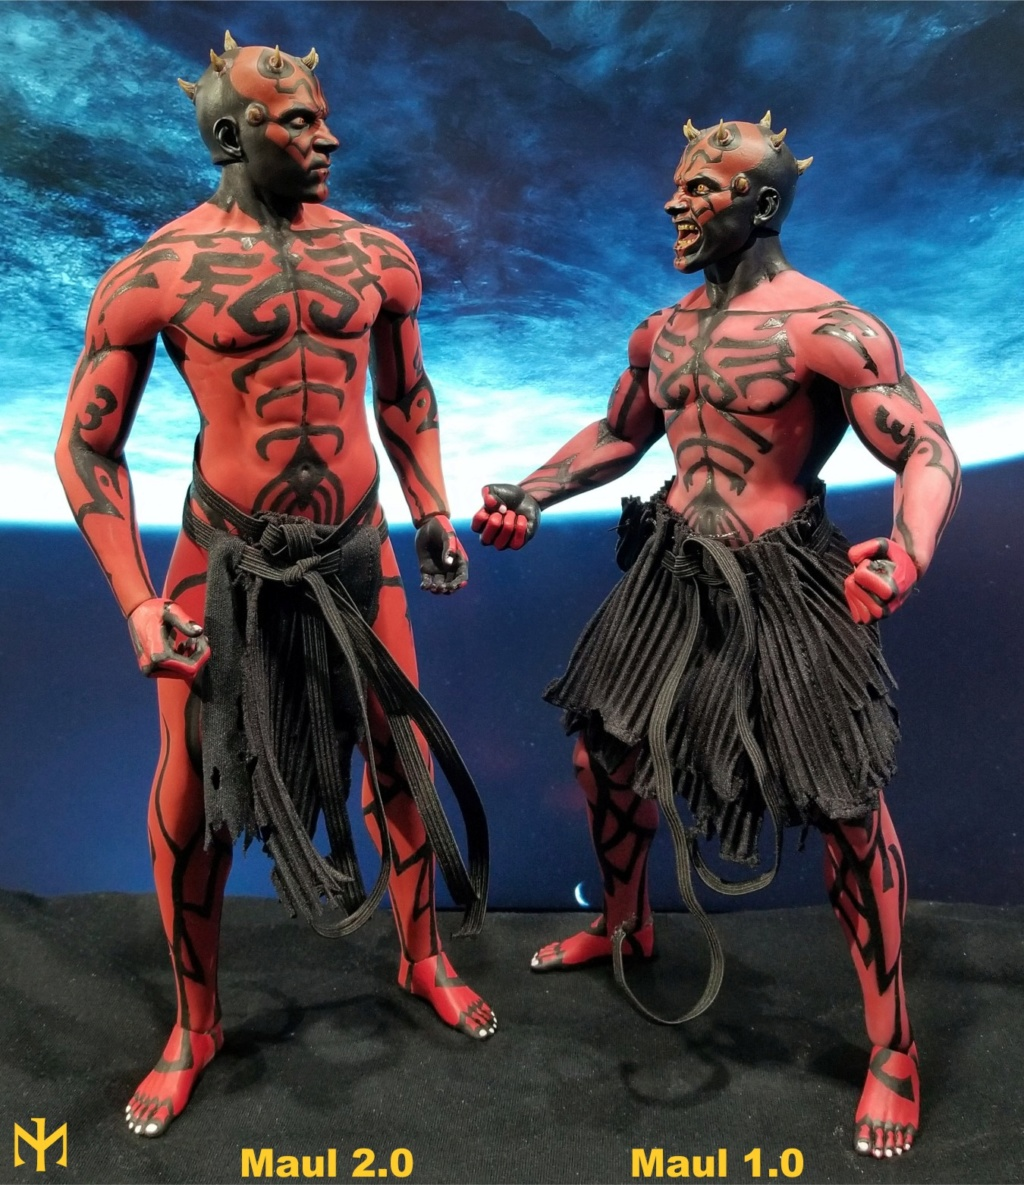 STAR WARS Updated Darth Maul Custom Part IV Maul 2.0 (photo heavy) Swdmt223